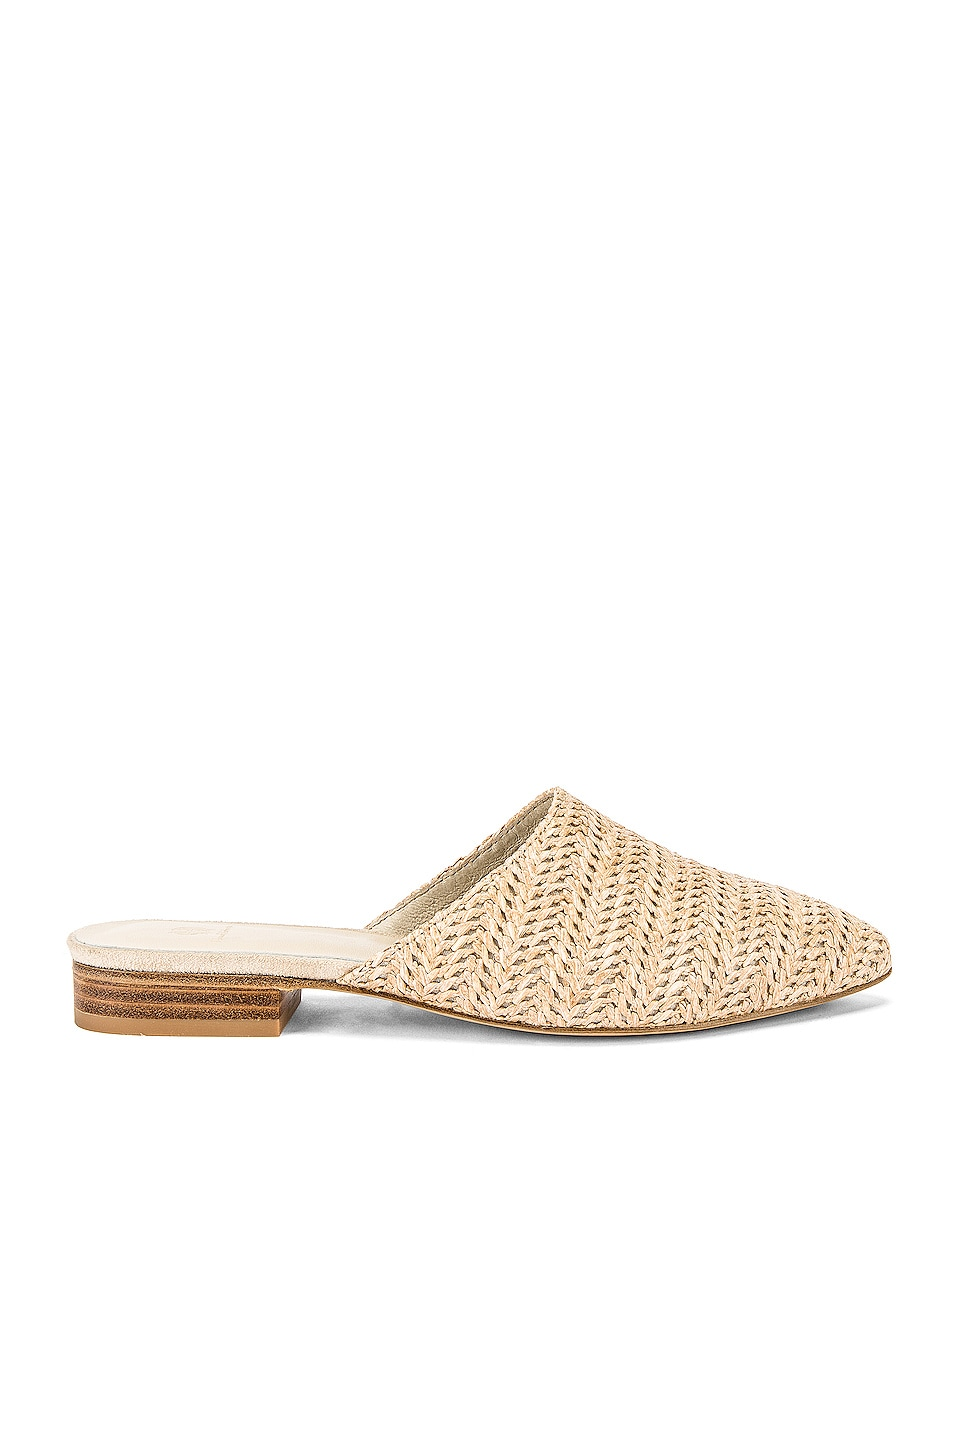 House of Harlow 1960 X REVOLVE Erin Slide in Natural